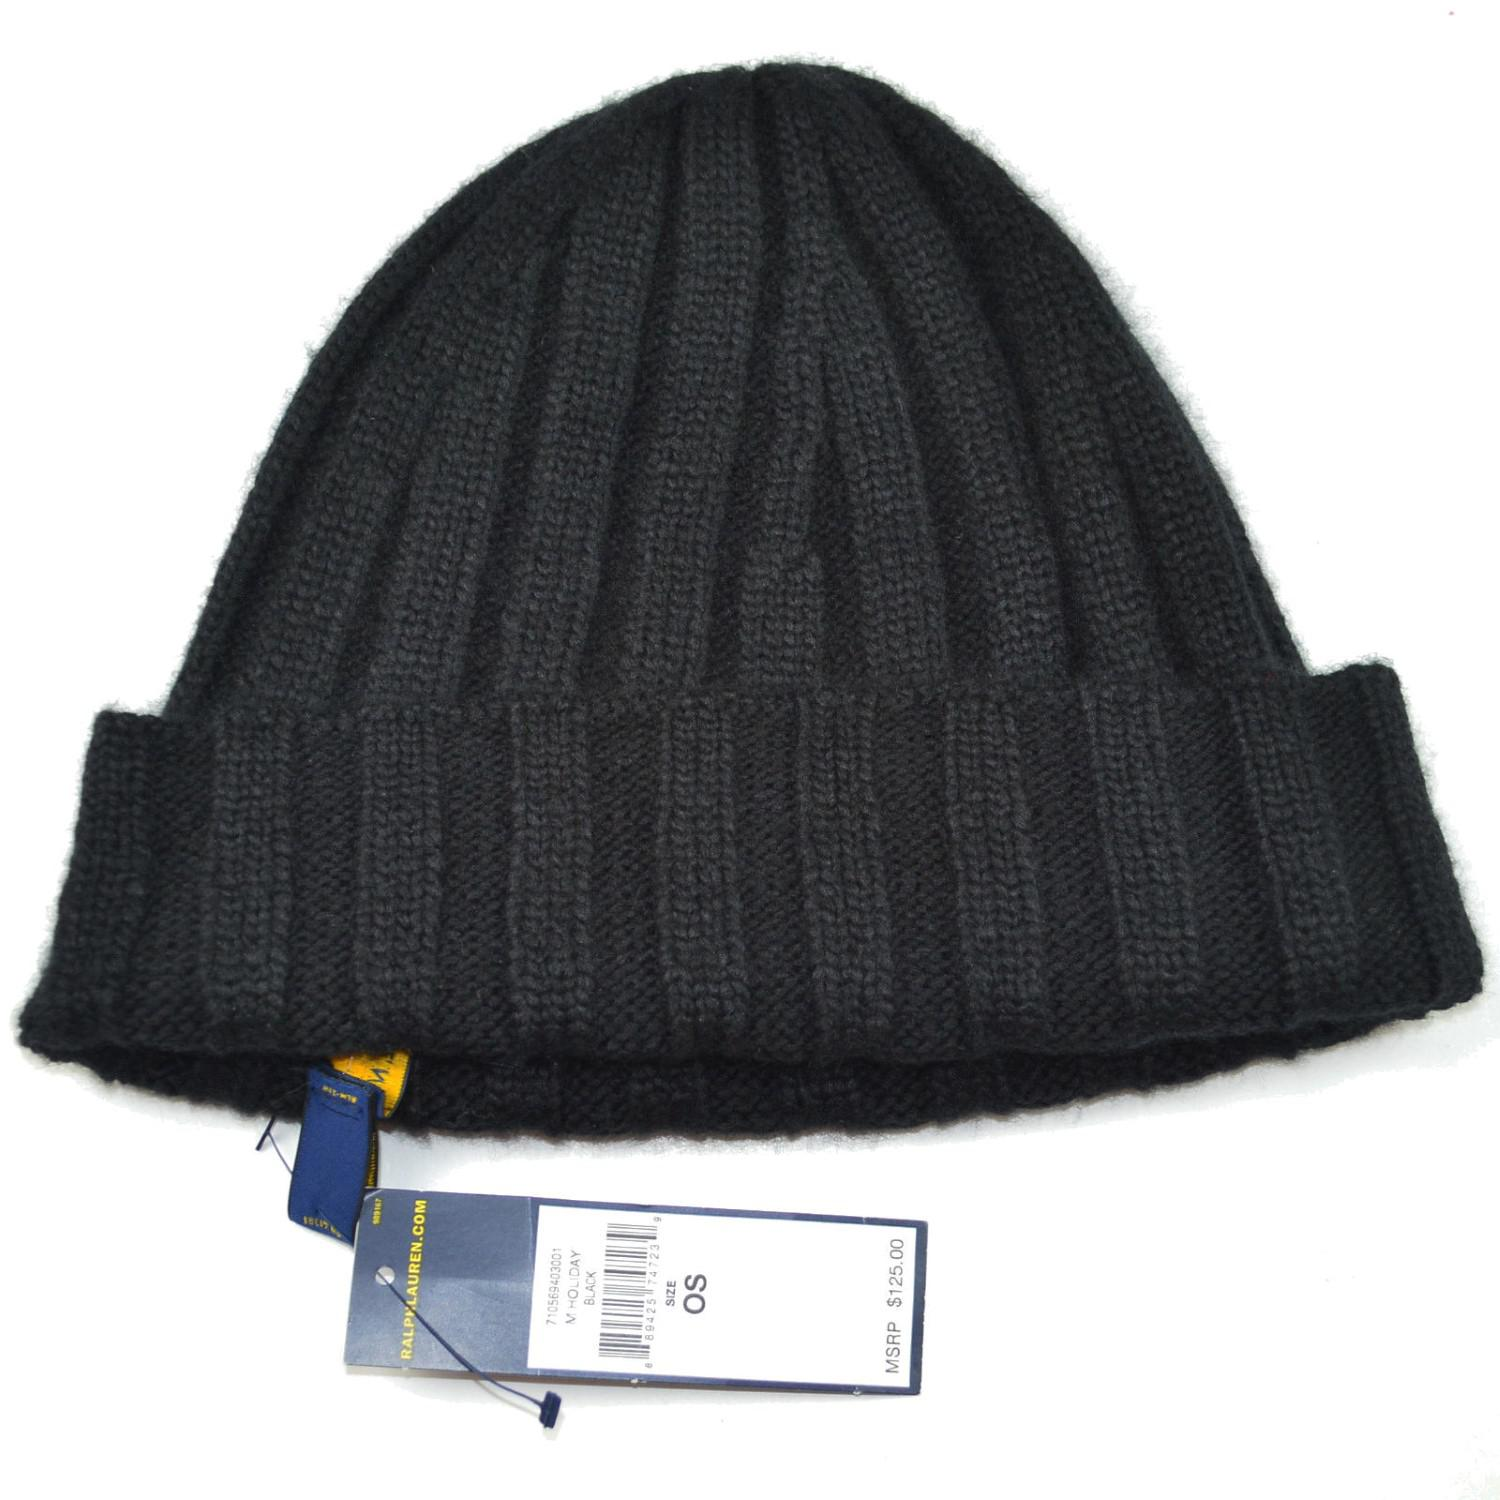 Lyst - Polo Ralph Lauren Cable Knit Solid Slouchy Beanie Hat in ... c8b7cbde3